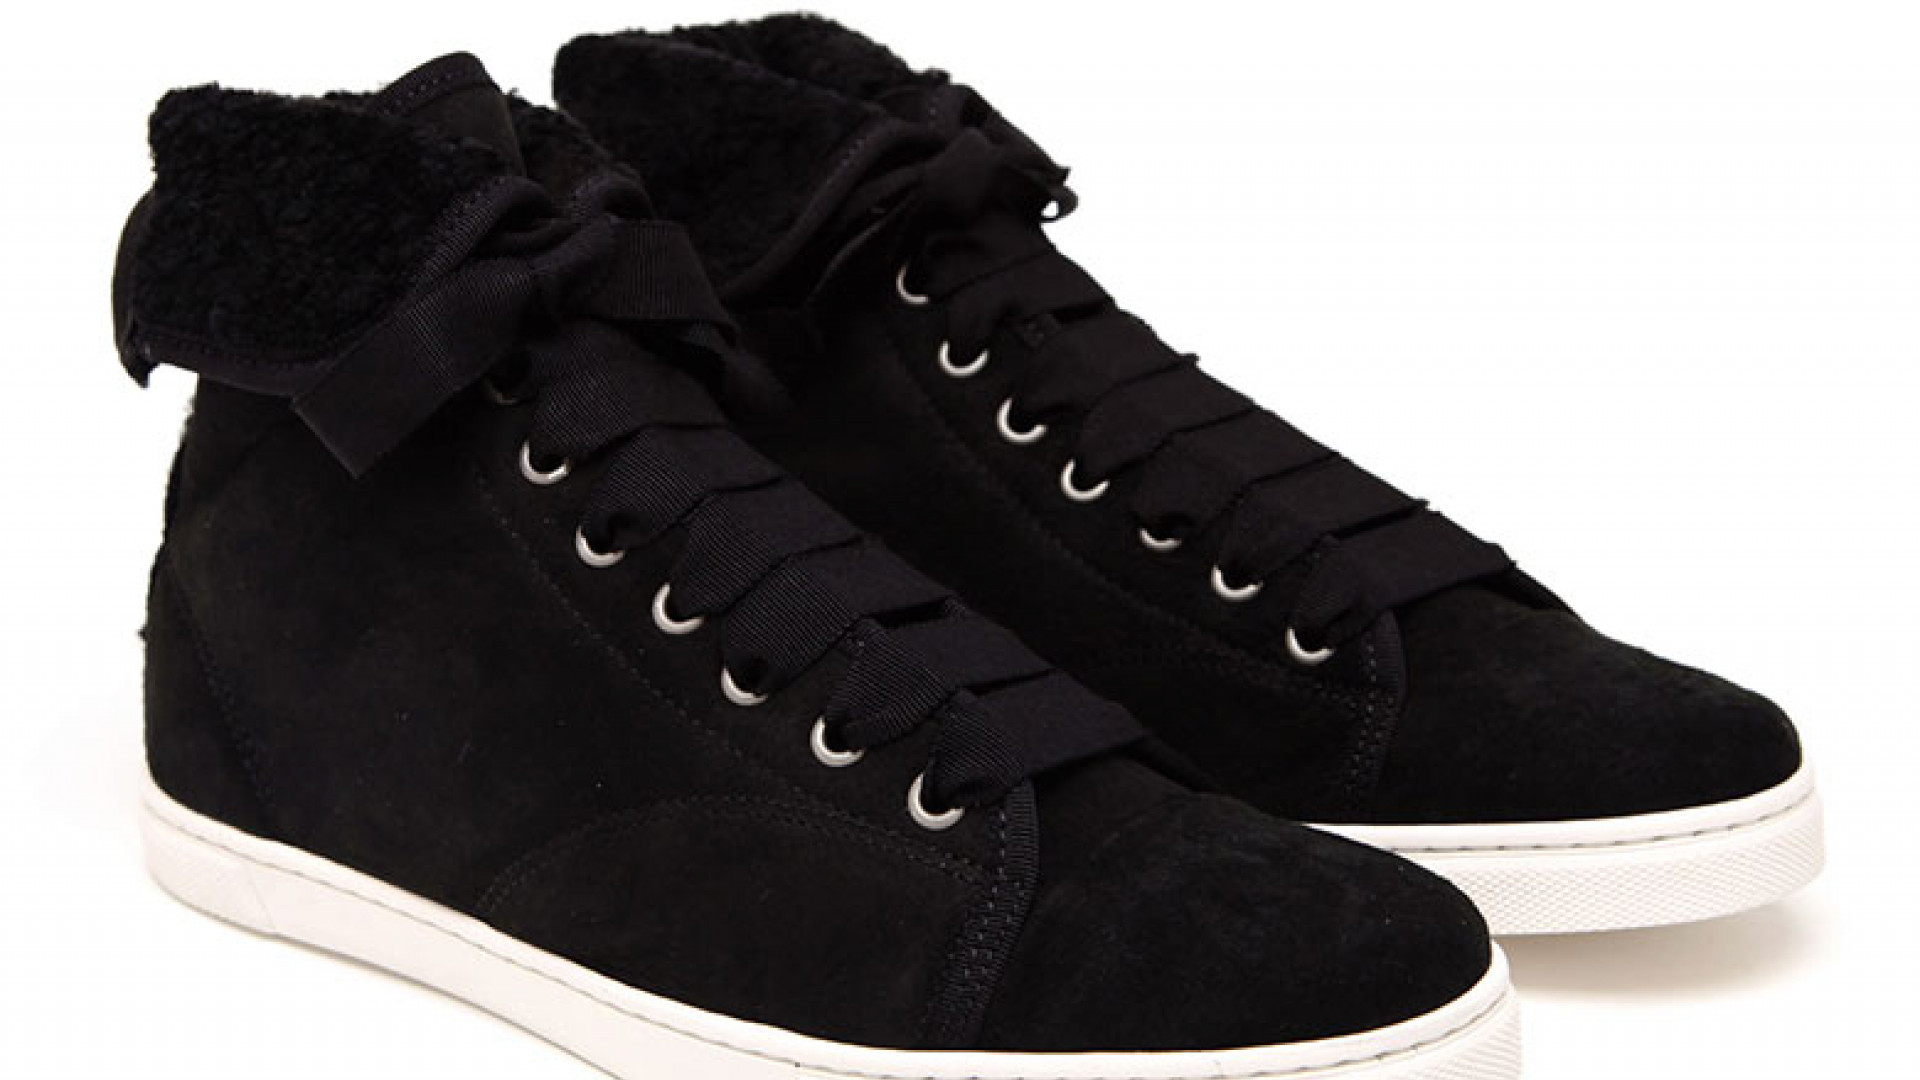 LANVIN---Shearling-and-Suede-Hi-Tops---£470-(1)